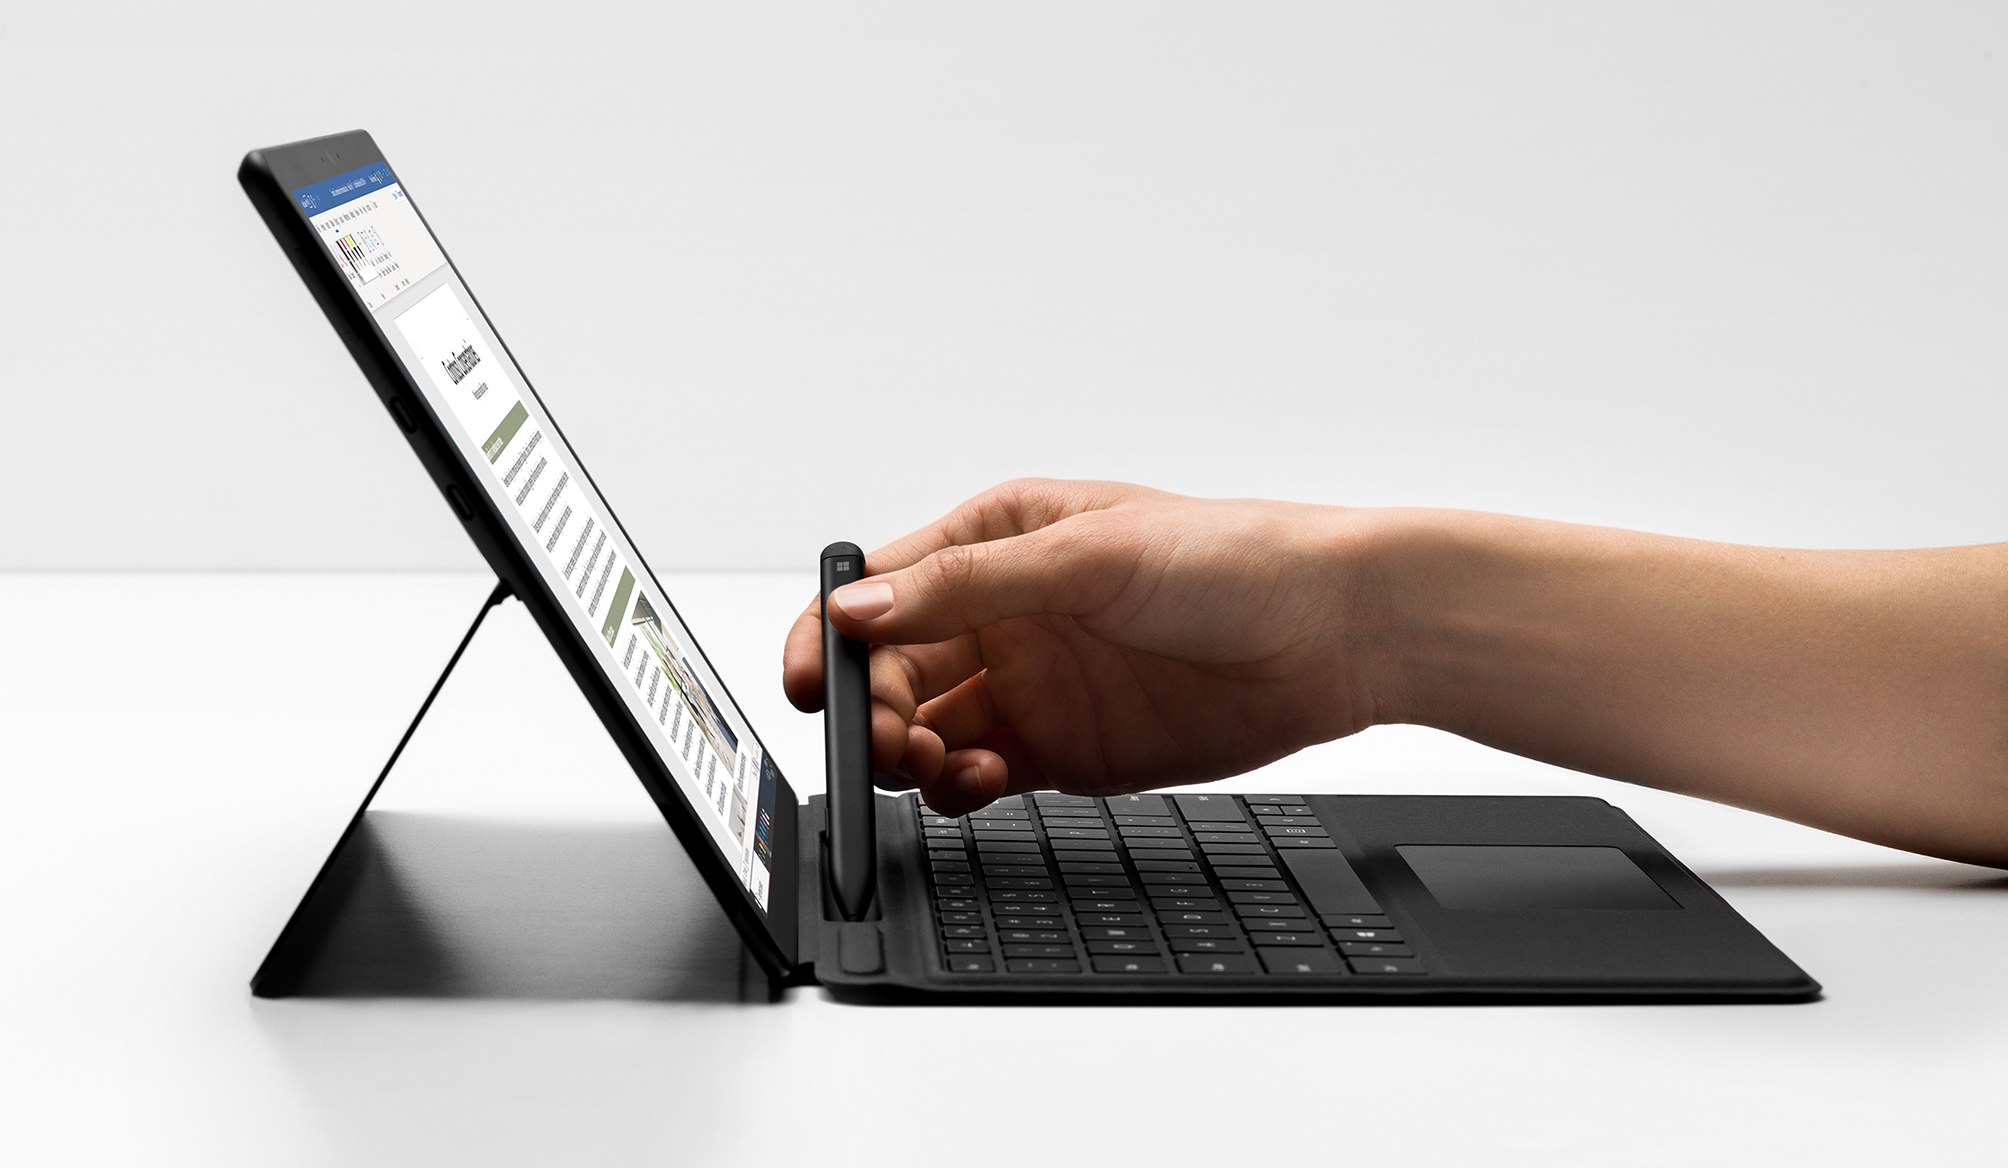 Image of a hand removing a pen from the new Surface Pro X.